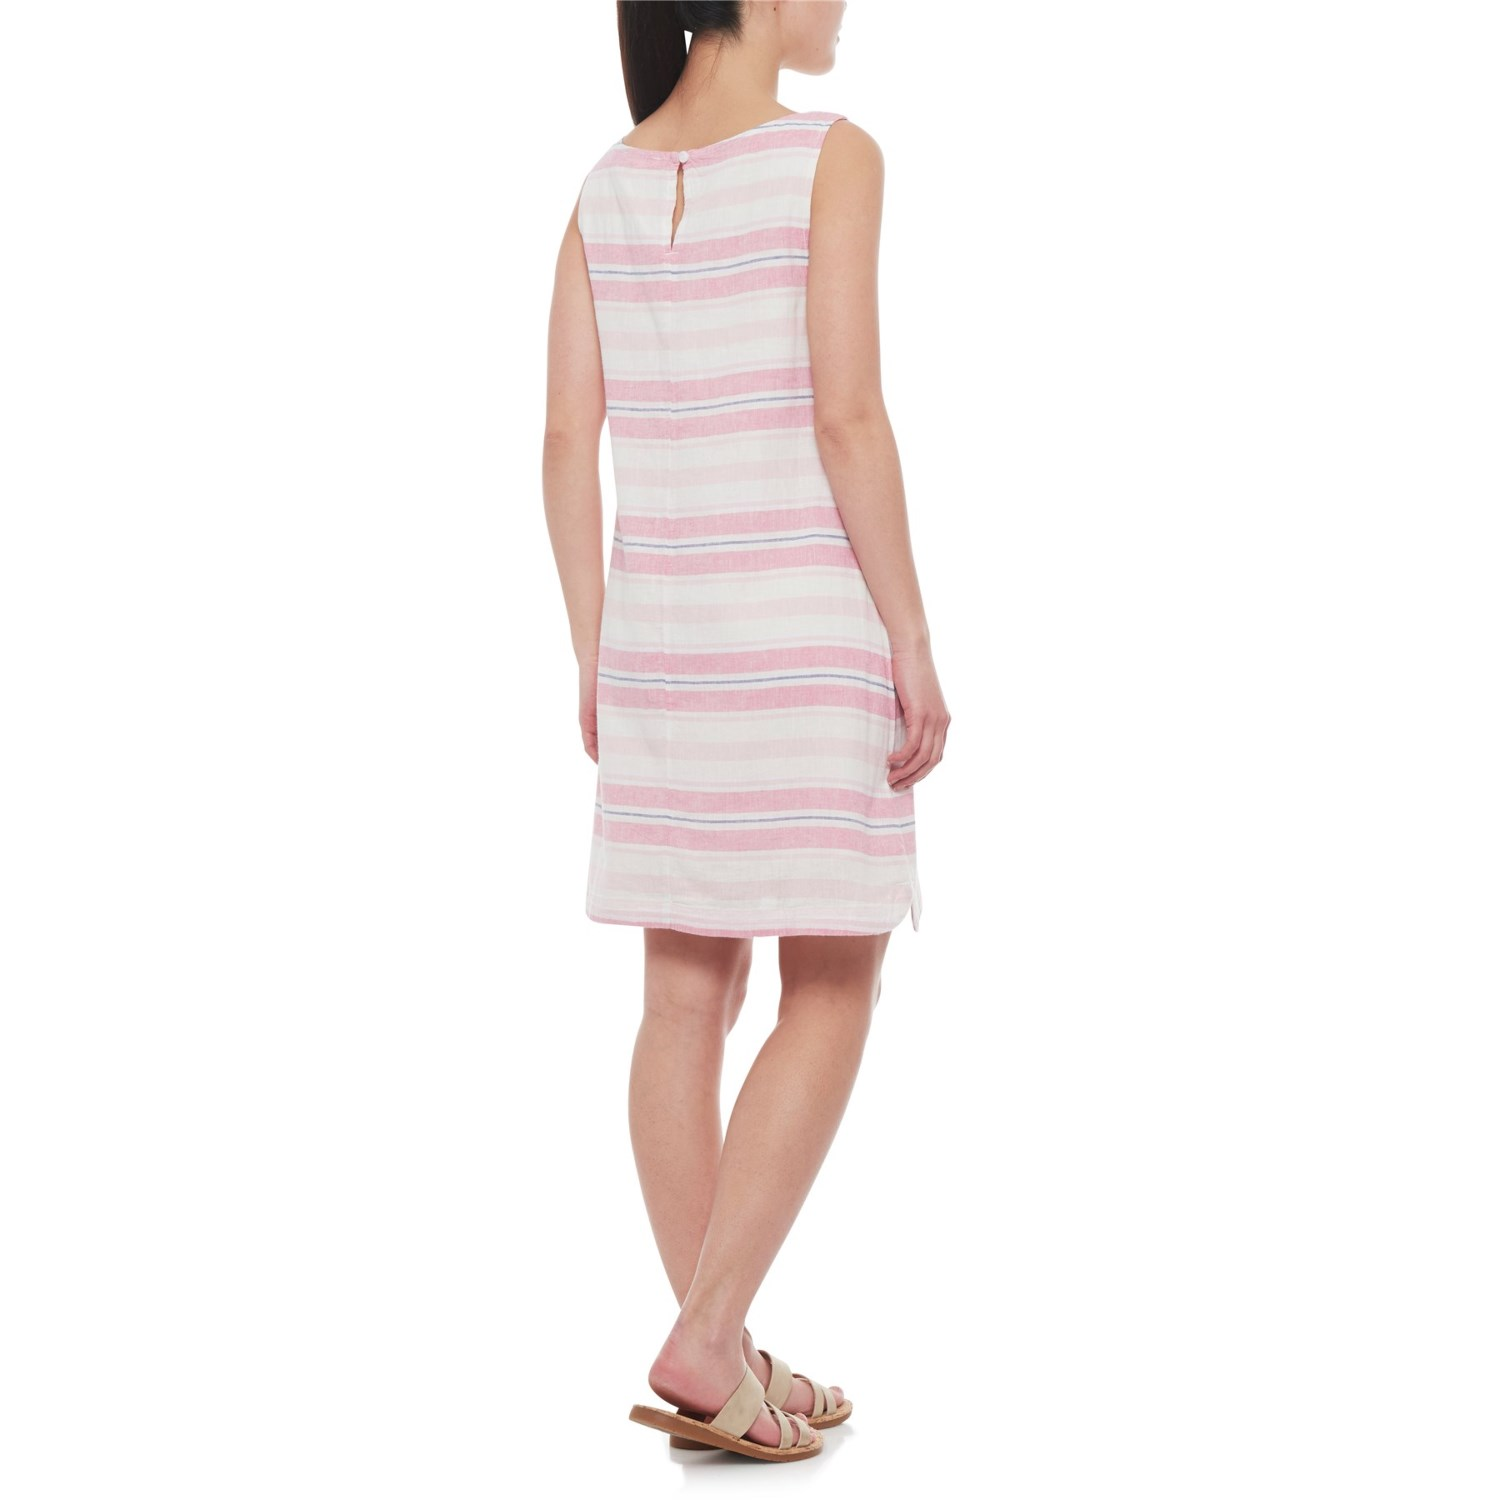 5370afb6a0 Beach Lunch Lounge Coral Reef Alina Dress (For Women) - Save 40%